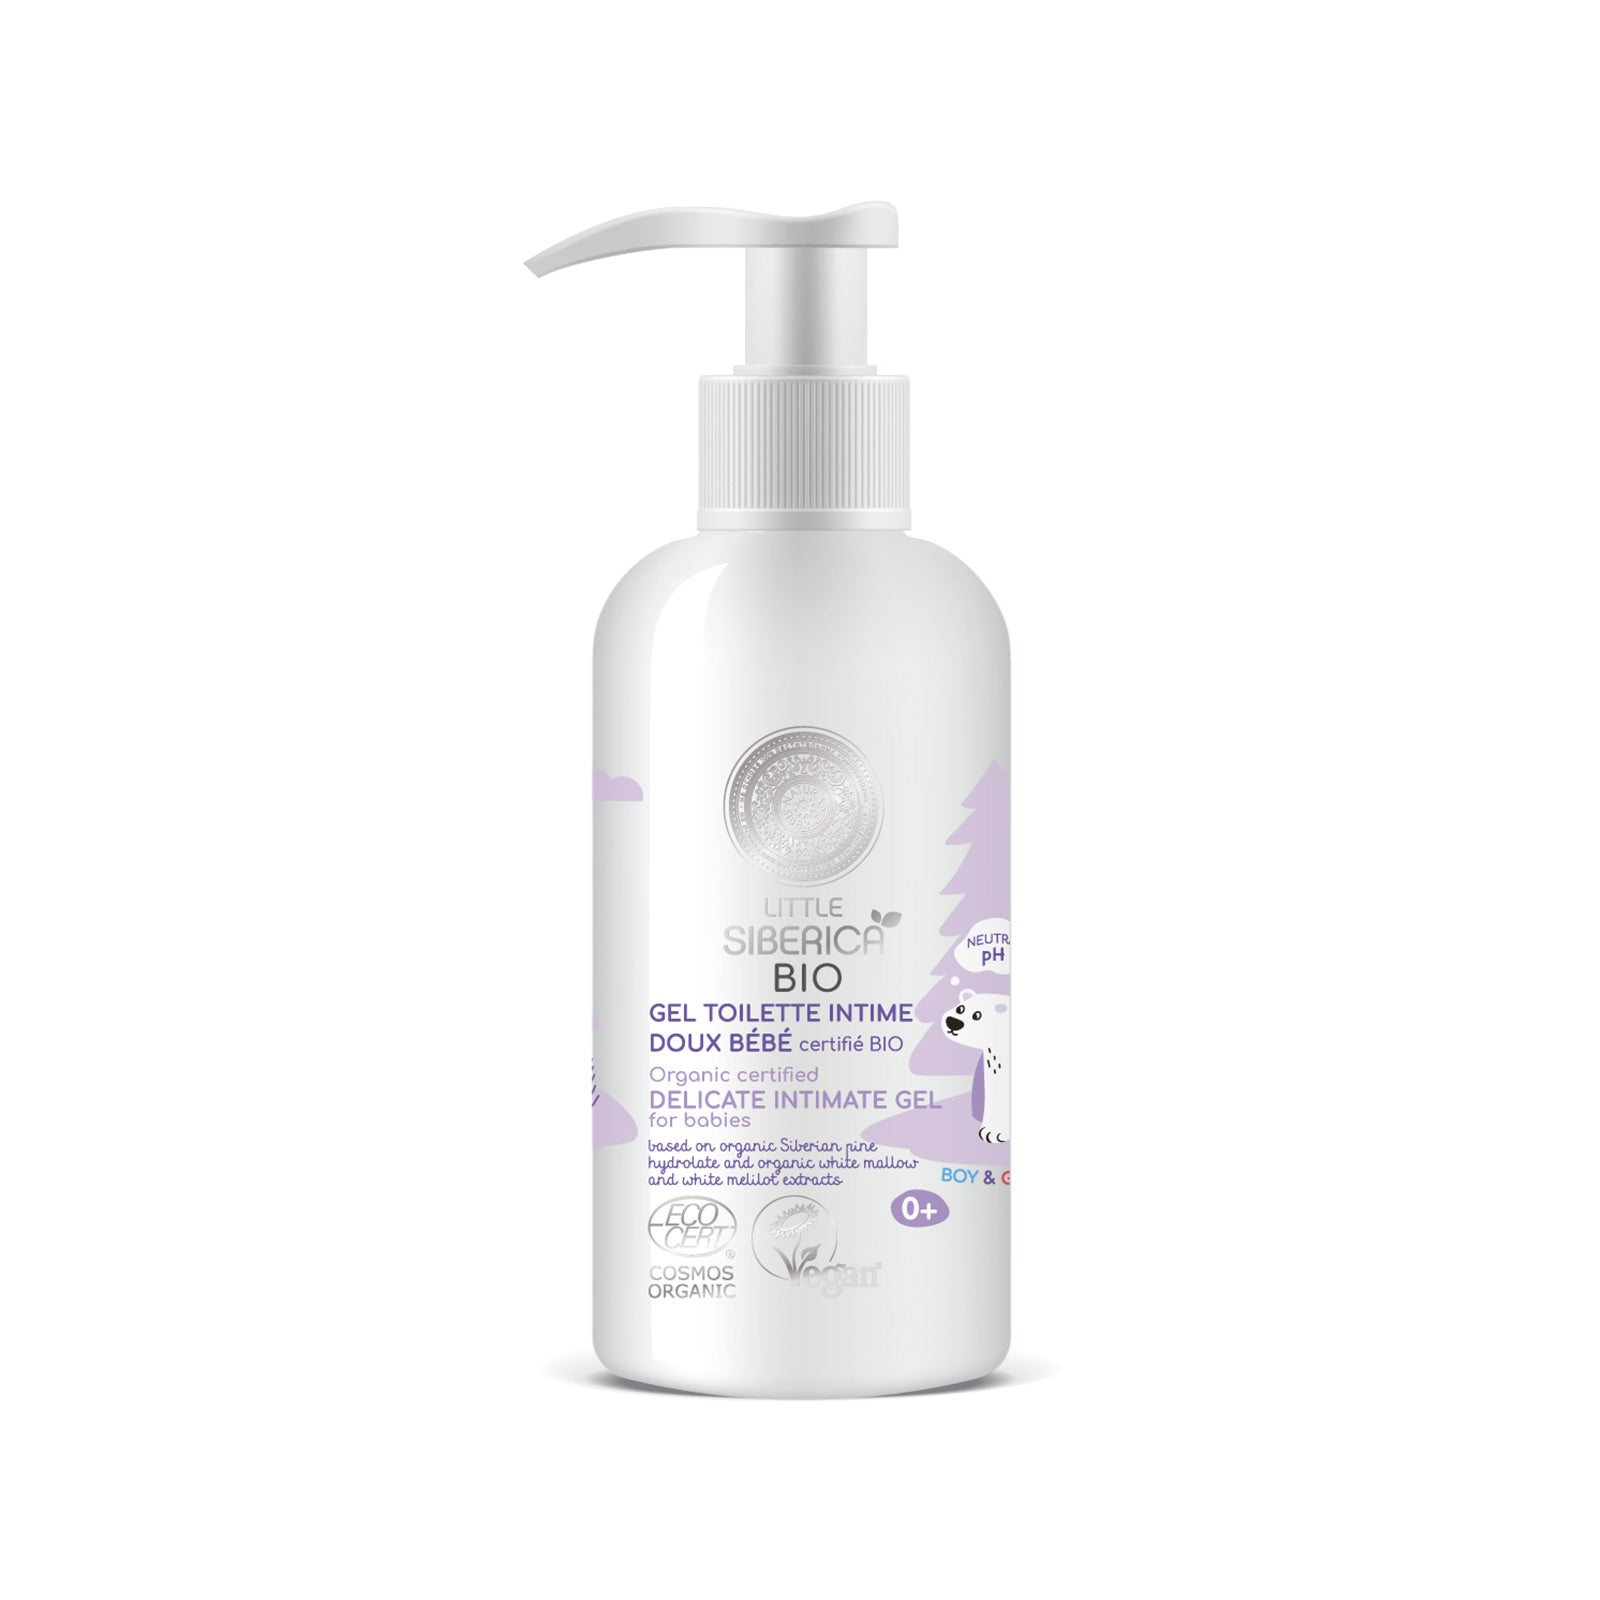 Delicate intimate gel for babies, 250 ml